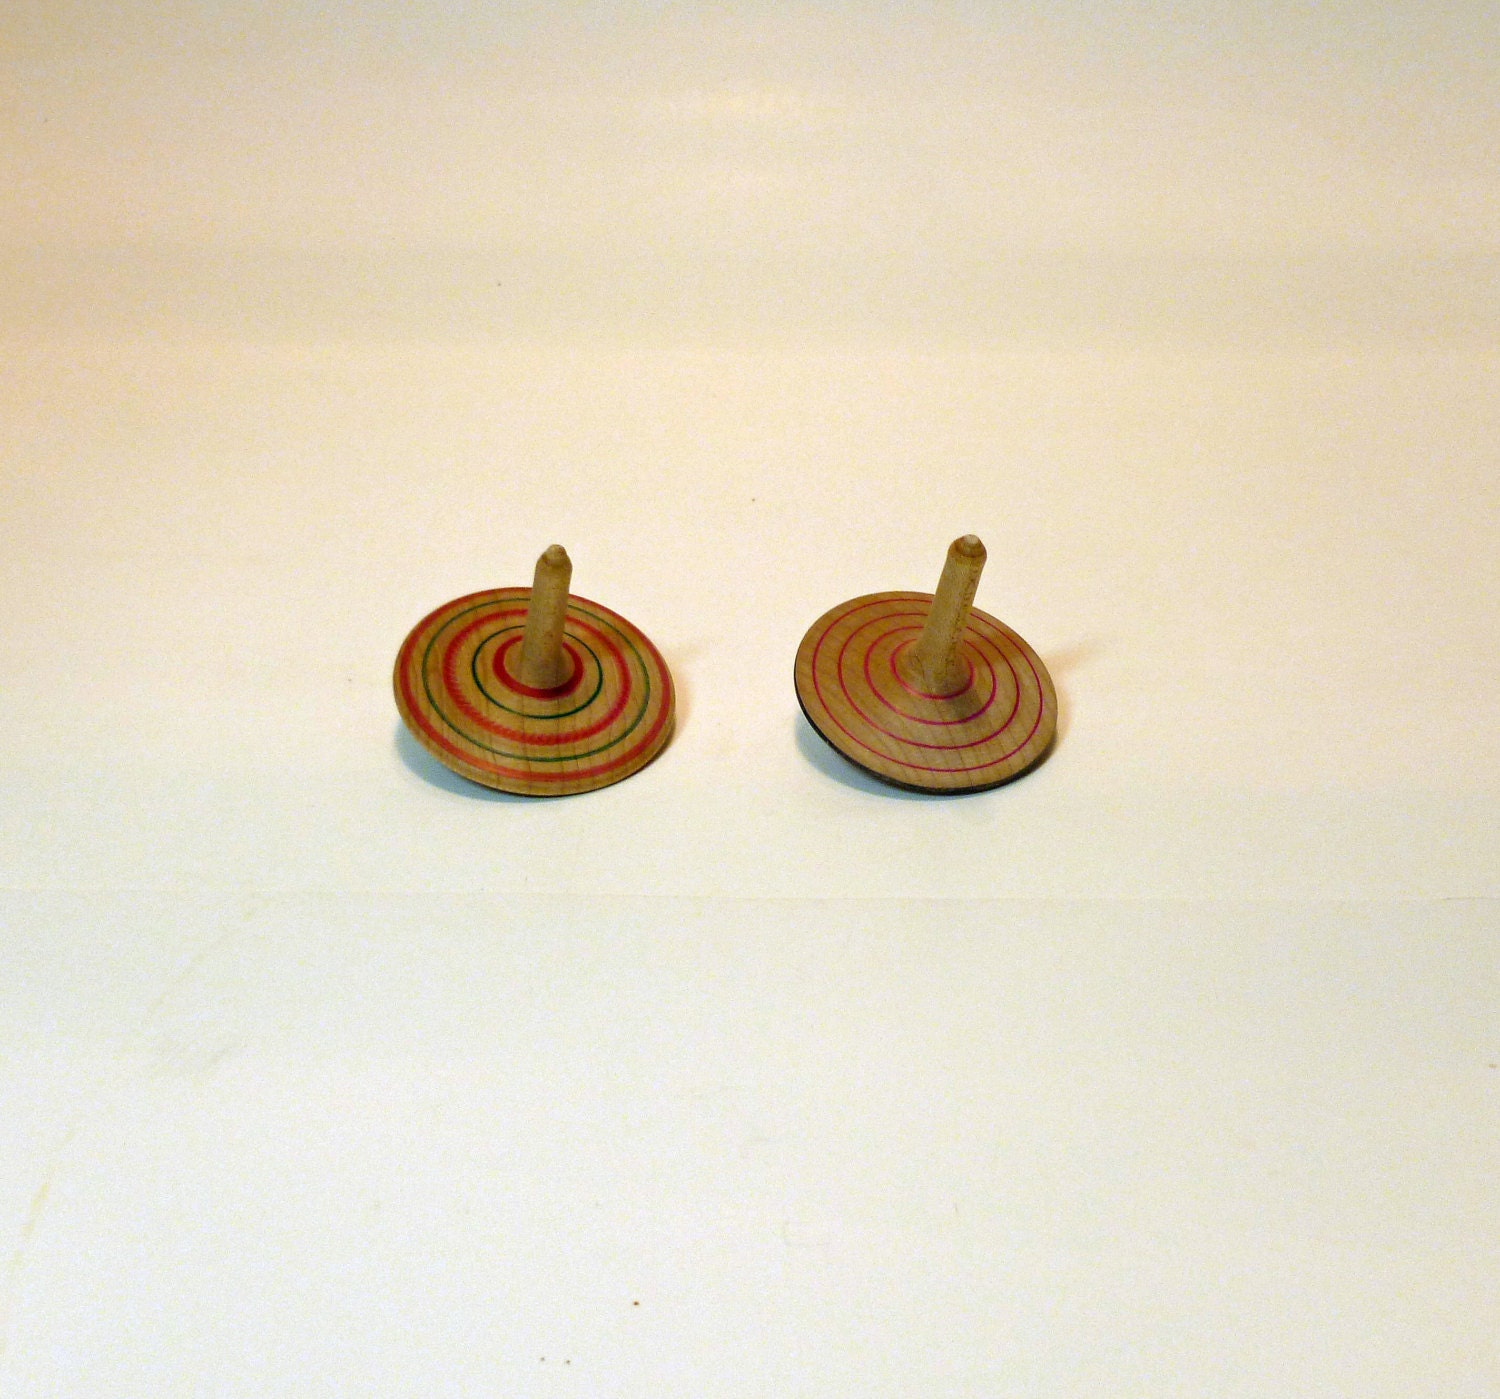 Handmade Wooden Spinning Tops by mcarroll5 on Etsy